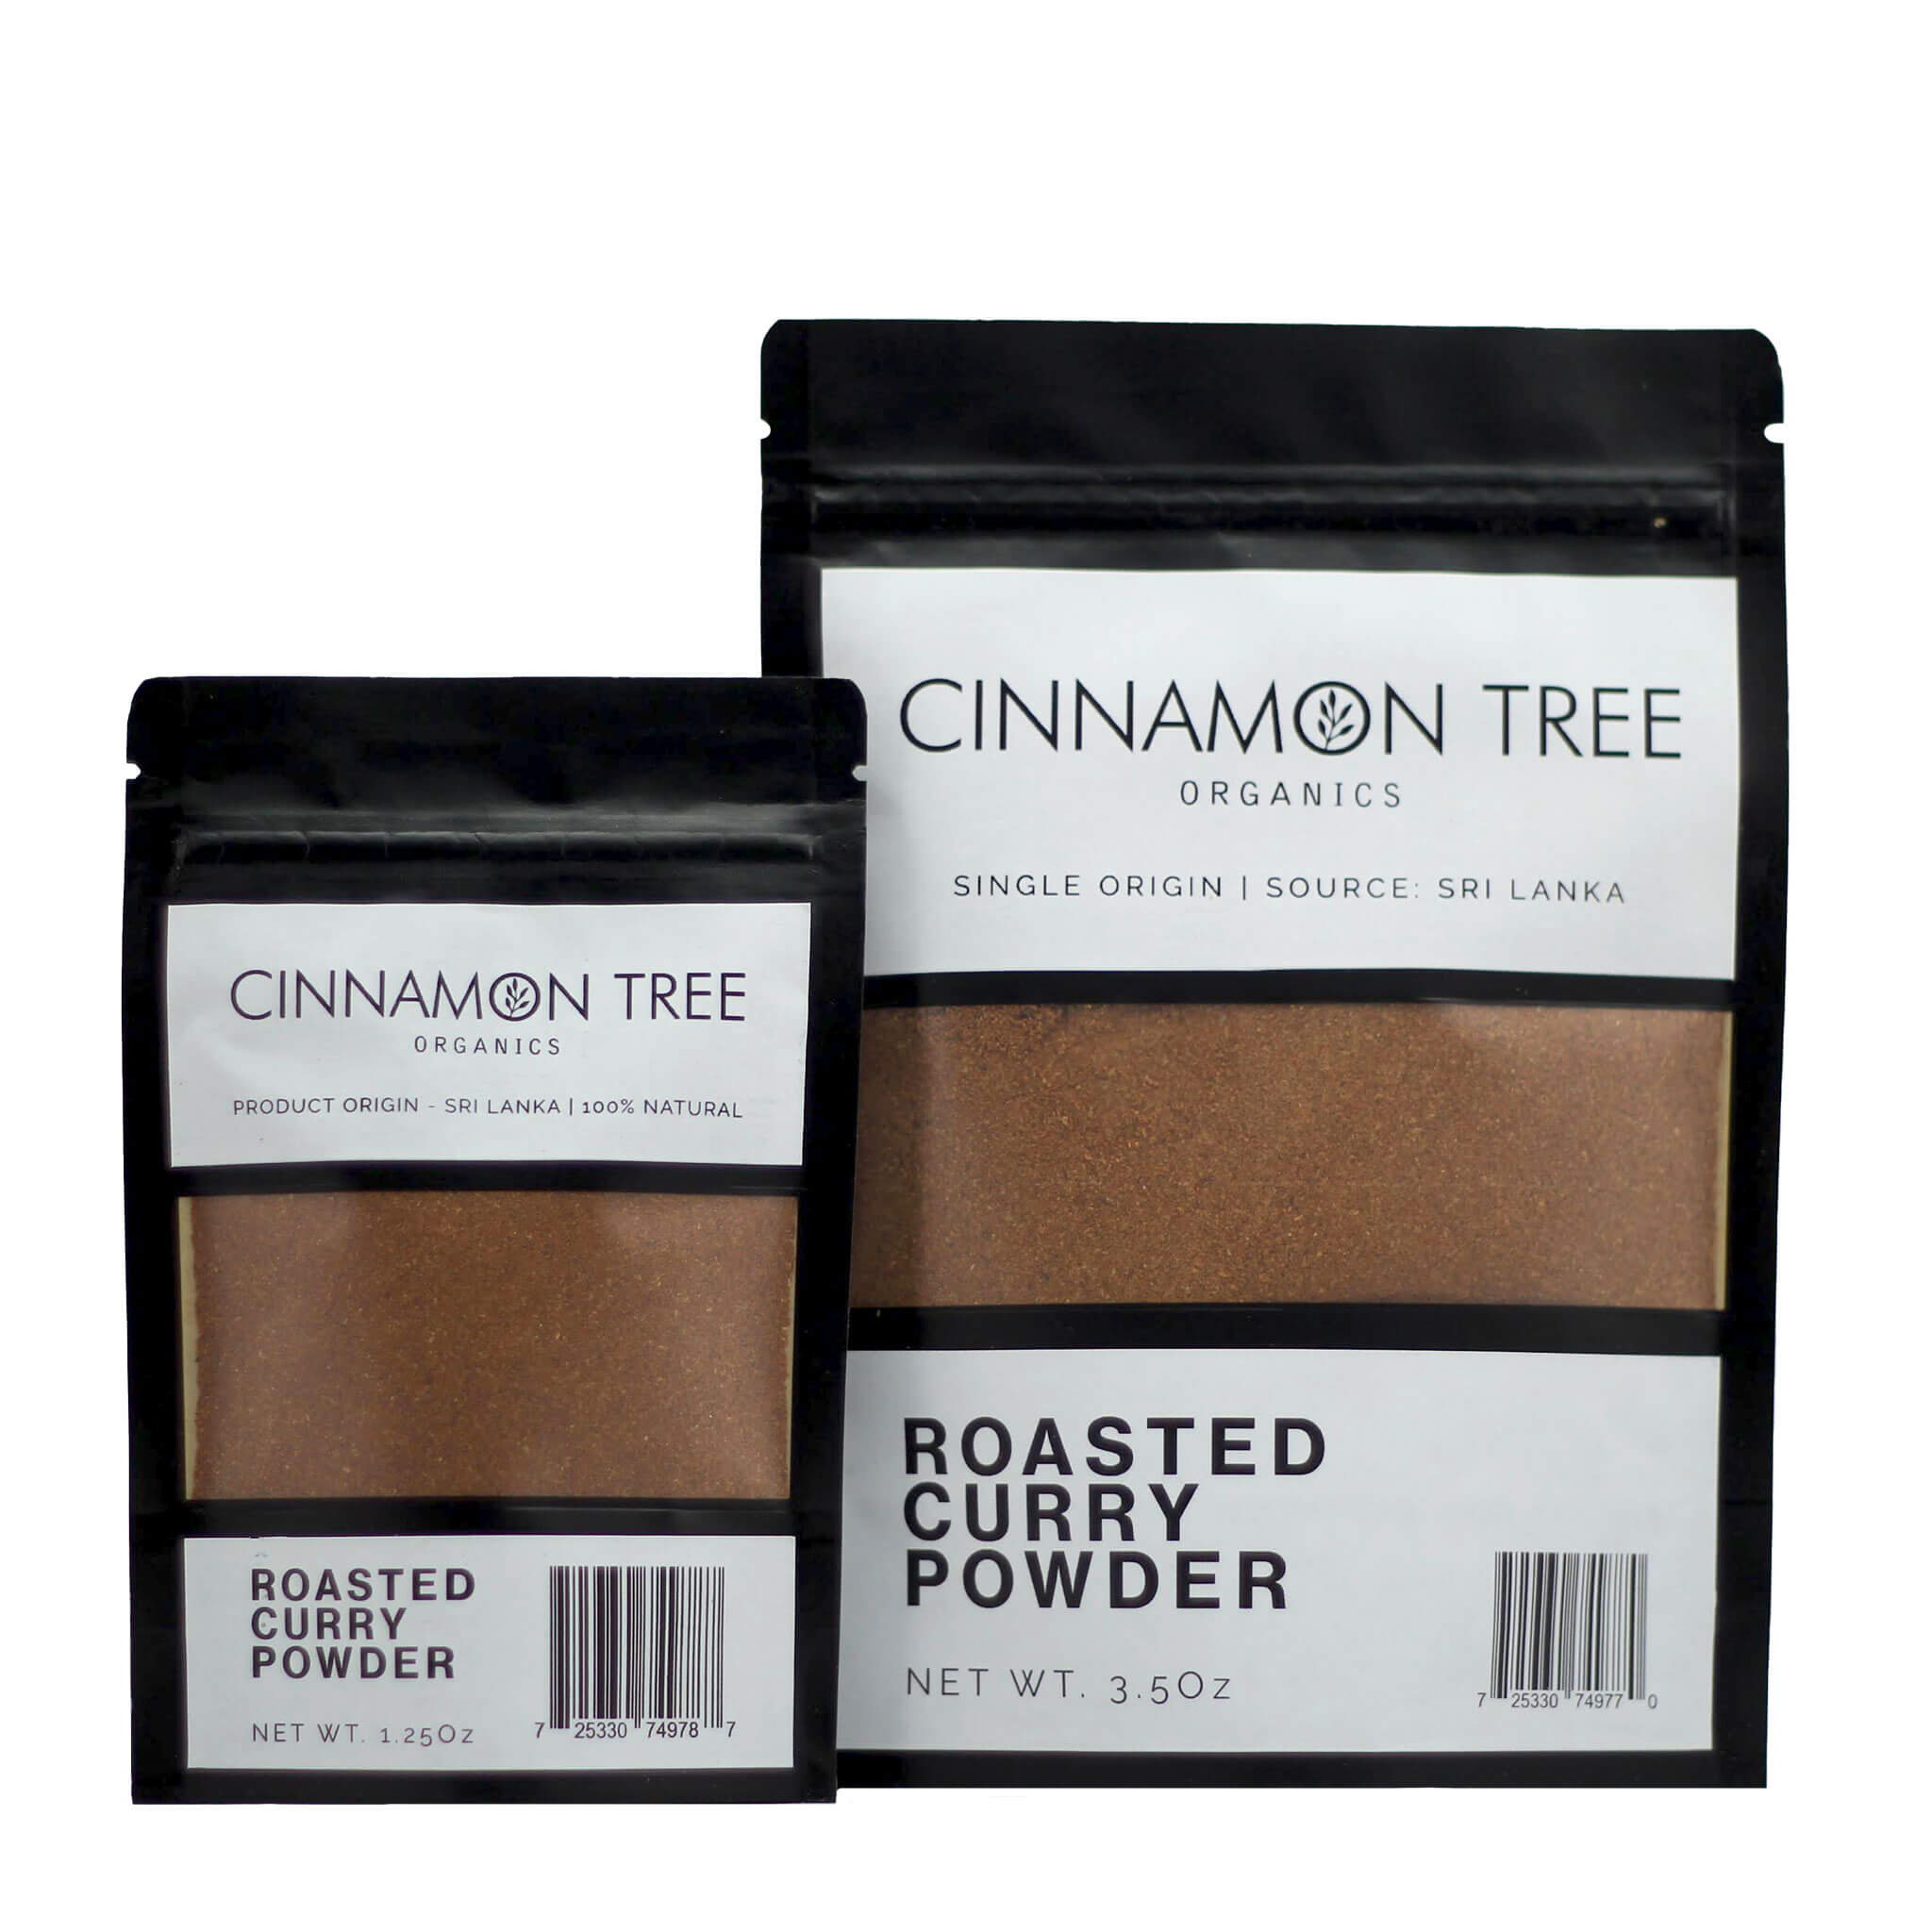 Cinnamon Tree Organics Ceylon curry powder packs